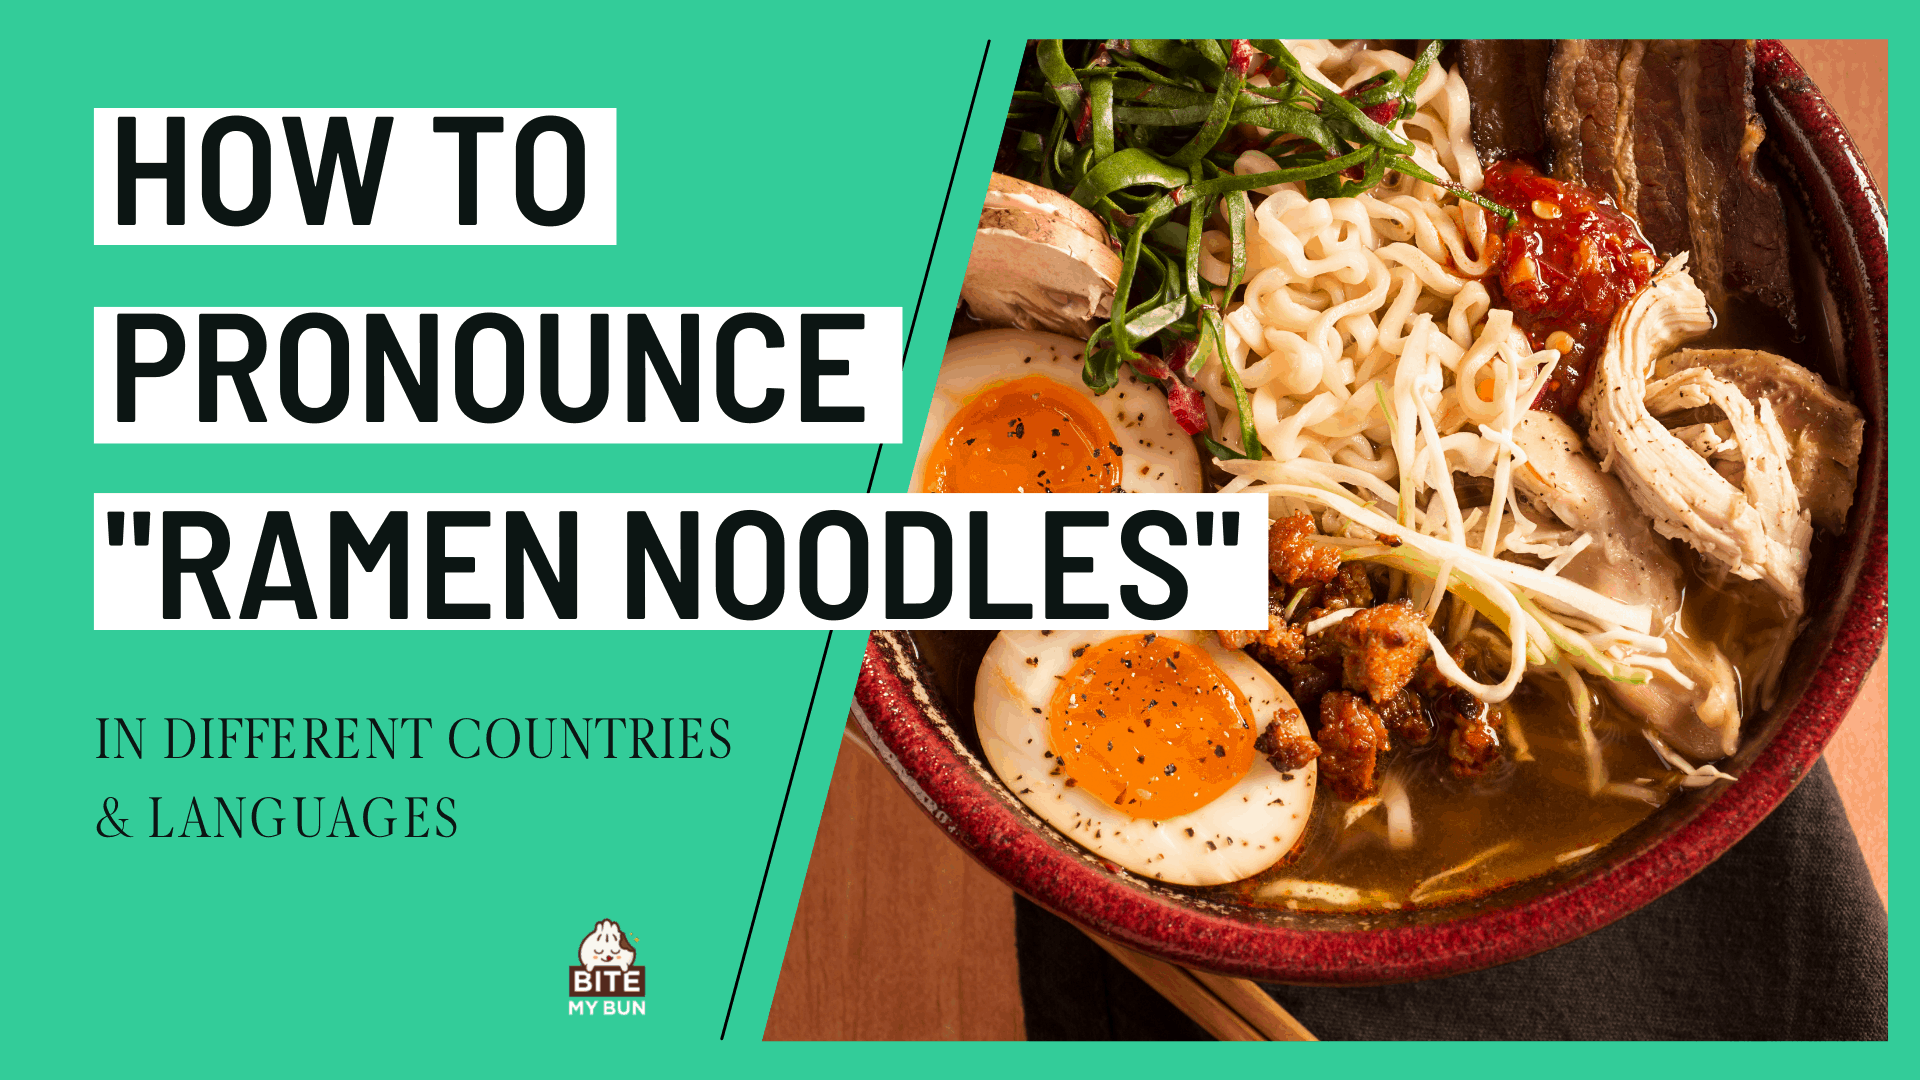 How to pronounce ramen noodles in different countries & languages